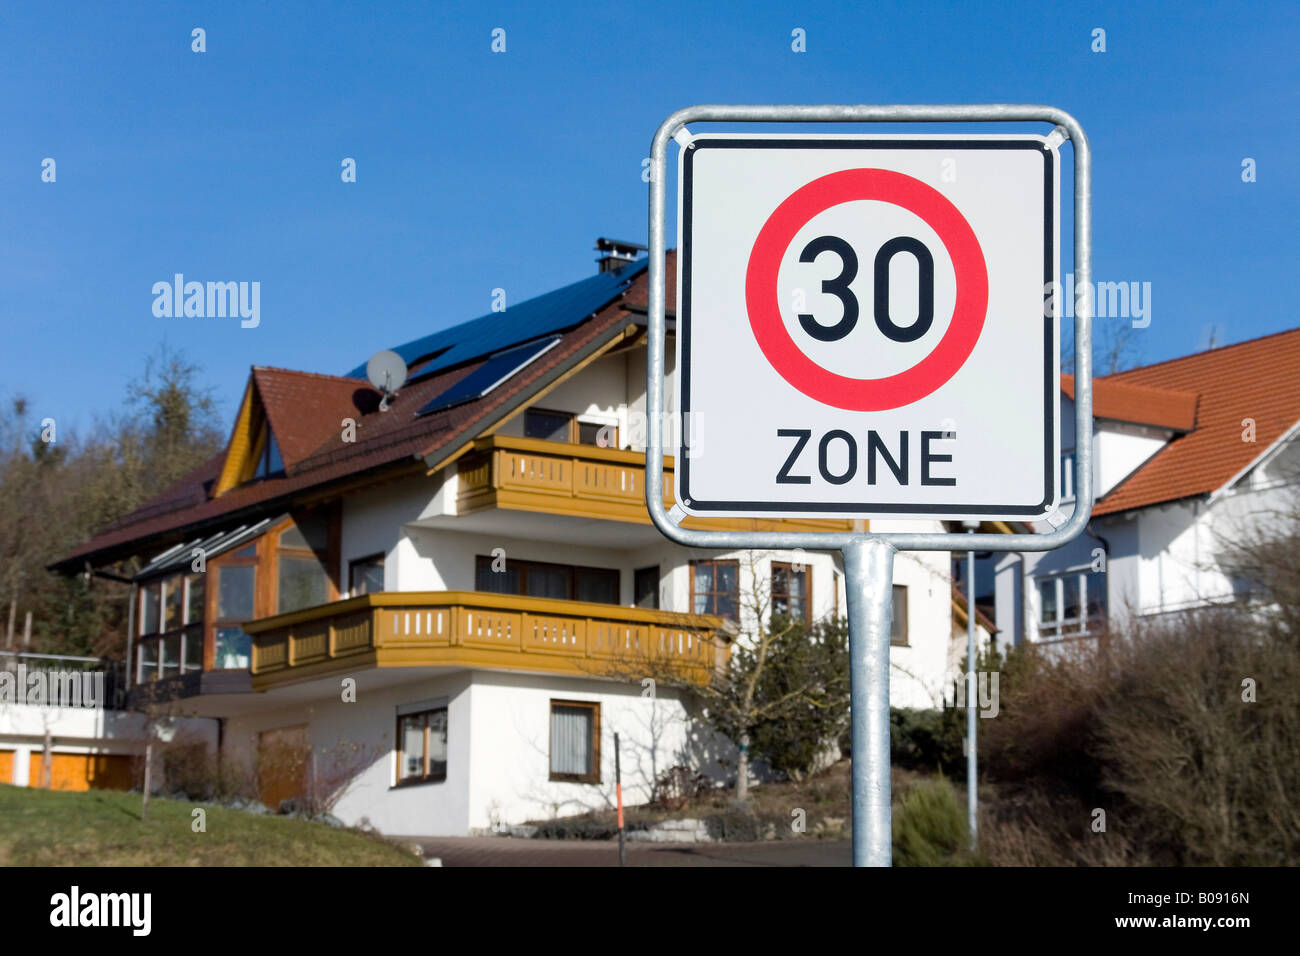 Traffic sign in a residential area, 30 km/h speed limit - Stock Image